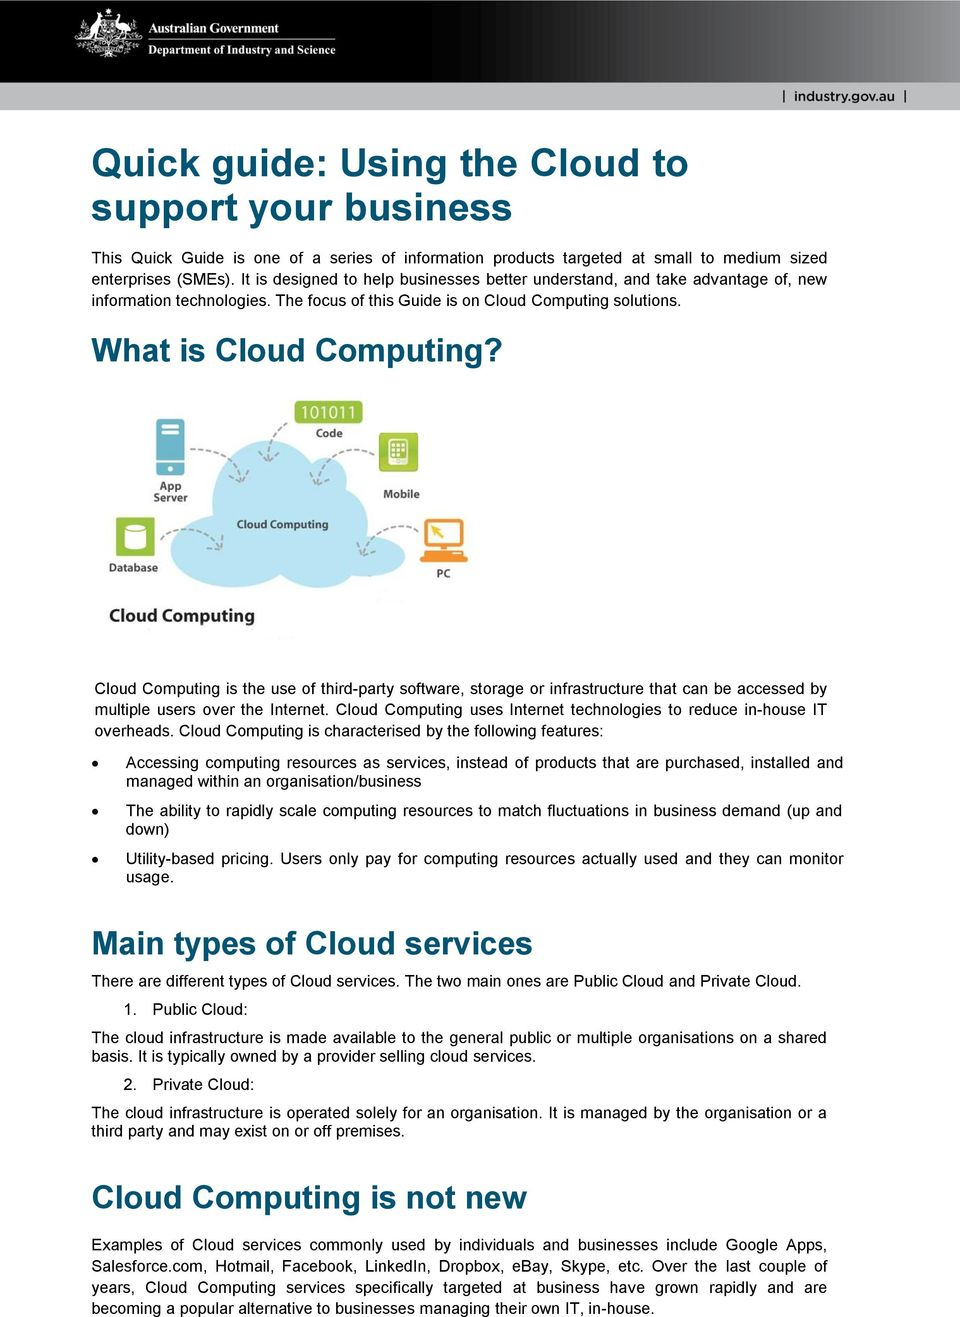 Cloud Computing is the use of third-party software, storage or infrastructure that can be accessed by multiple users over the Internet.